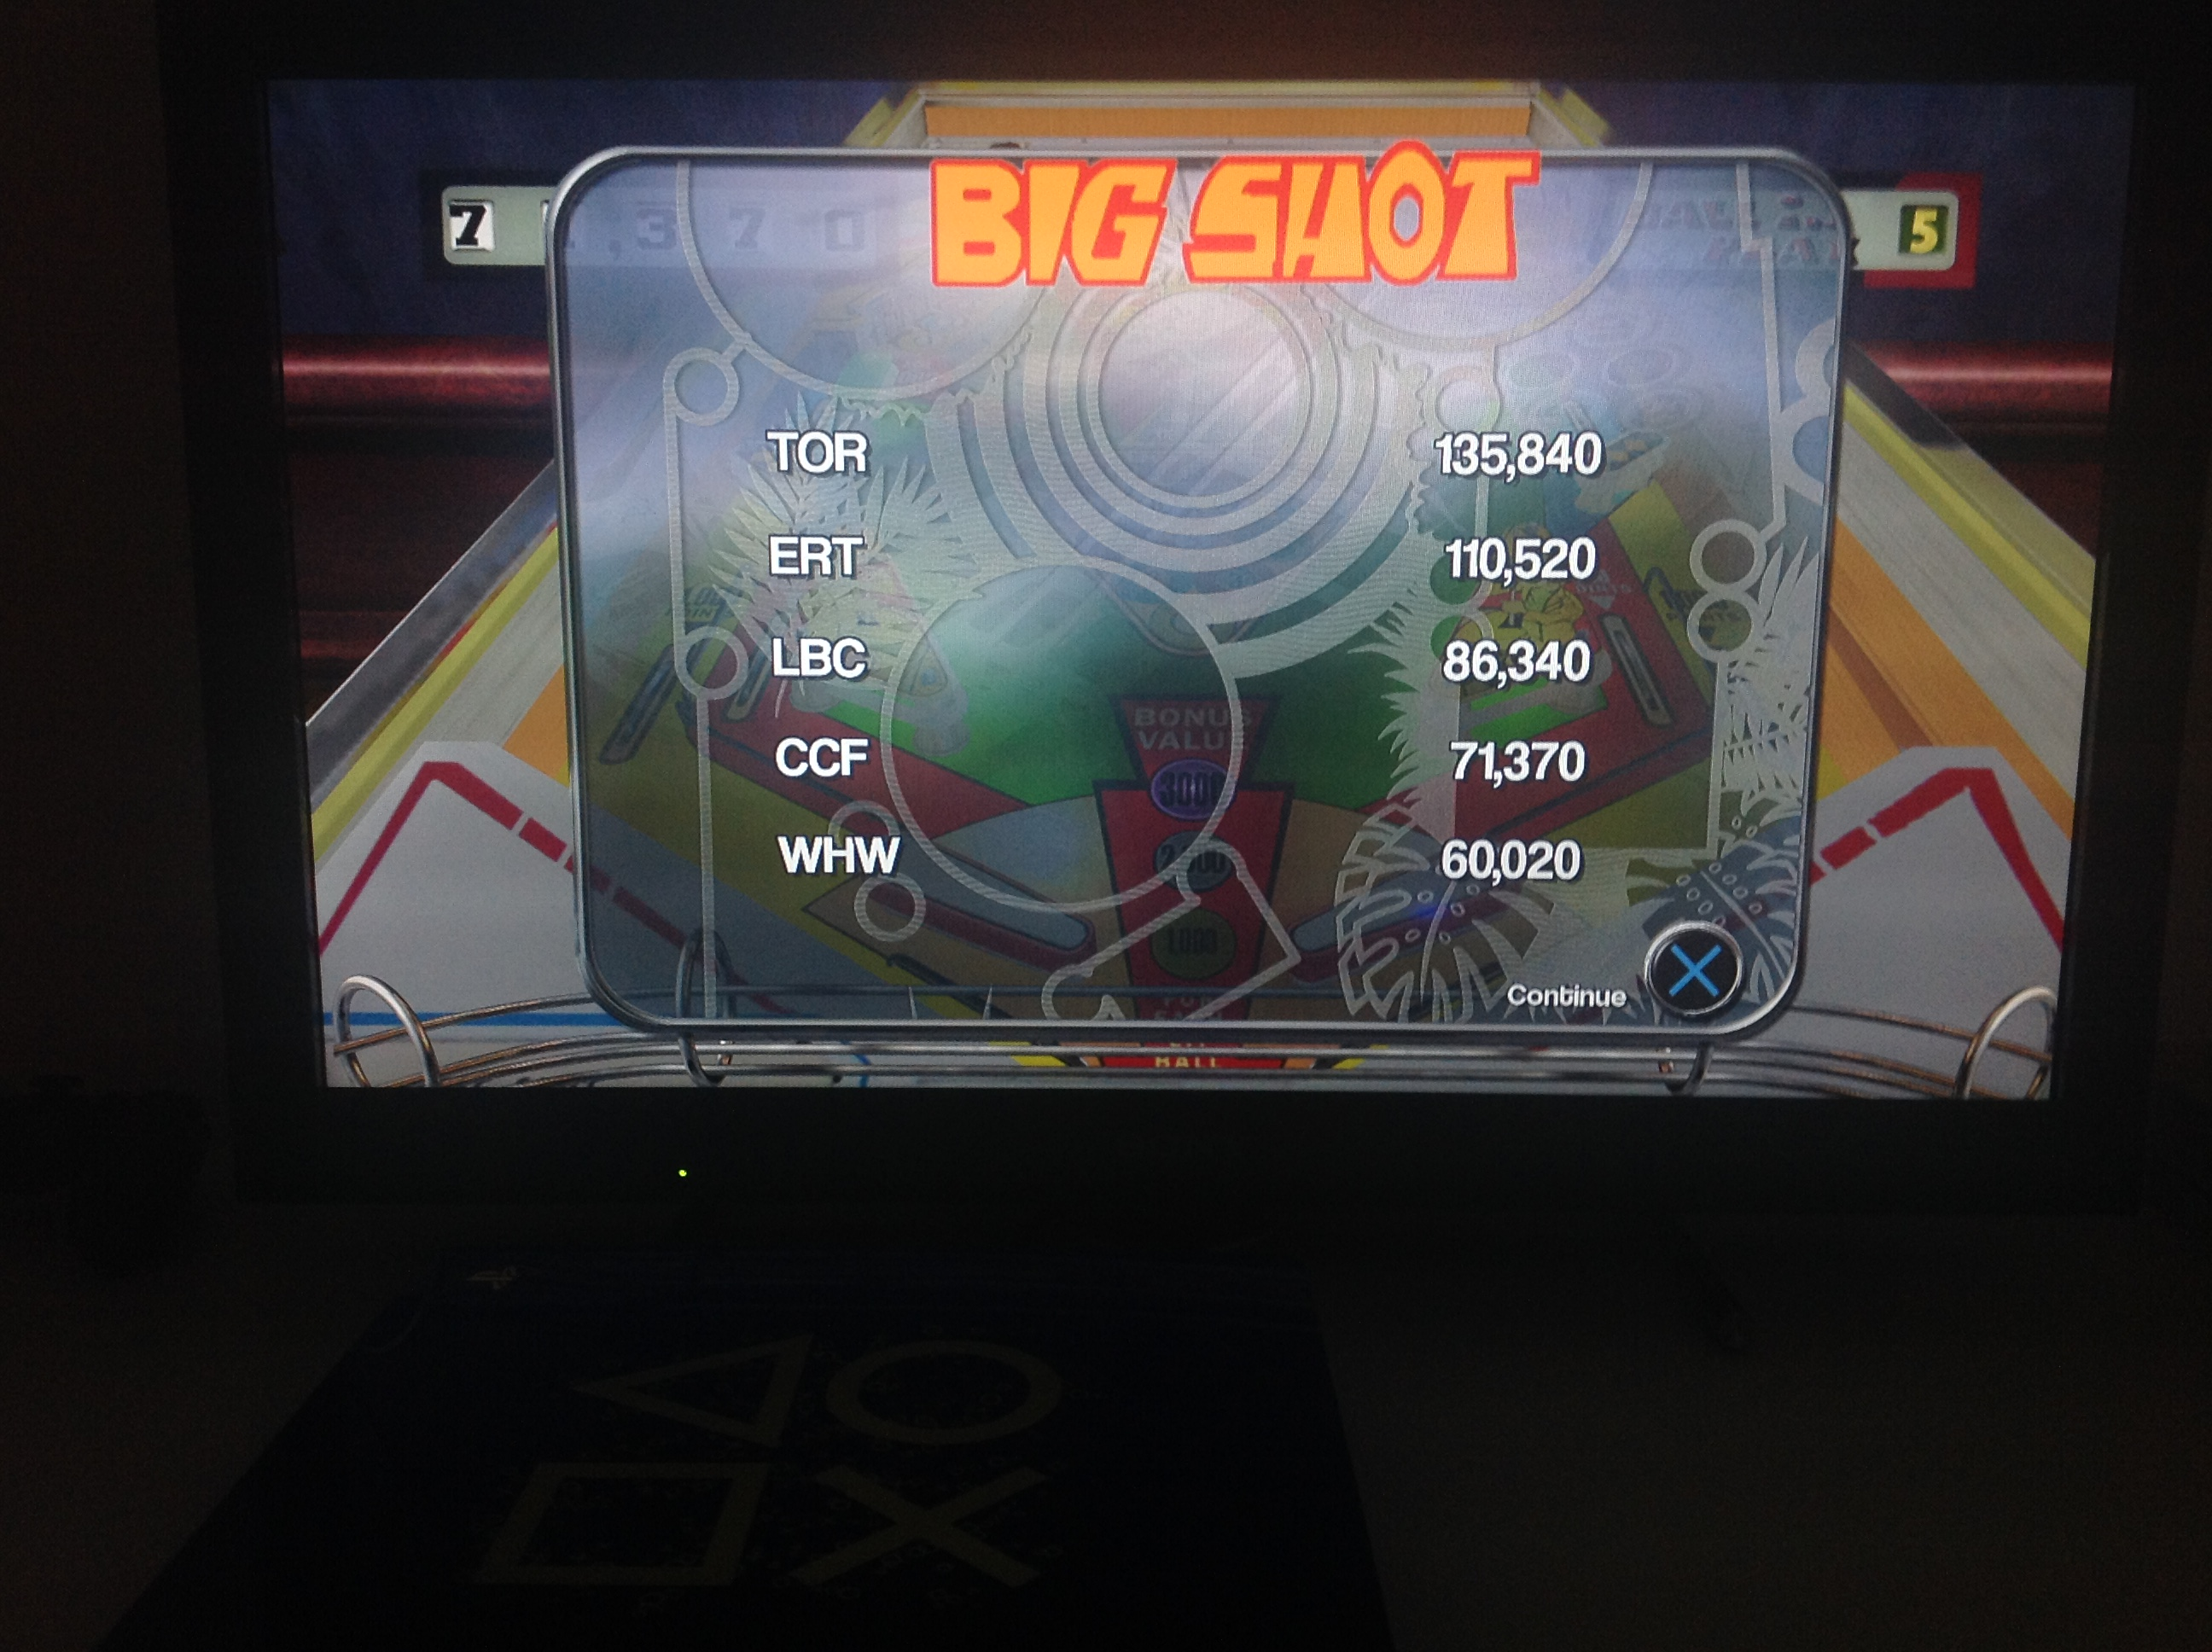 CoCoForest: Pinball Arcade: Big Shot (Playstation 4) 71,370 points on 2018-07-06 14:45:46